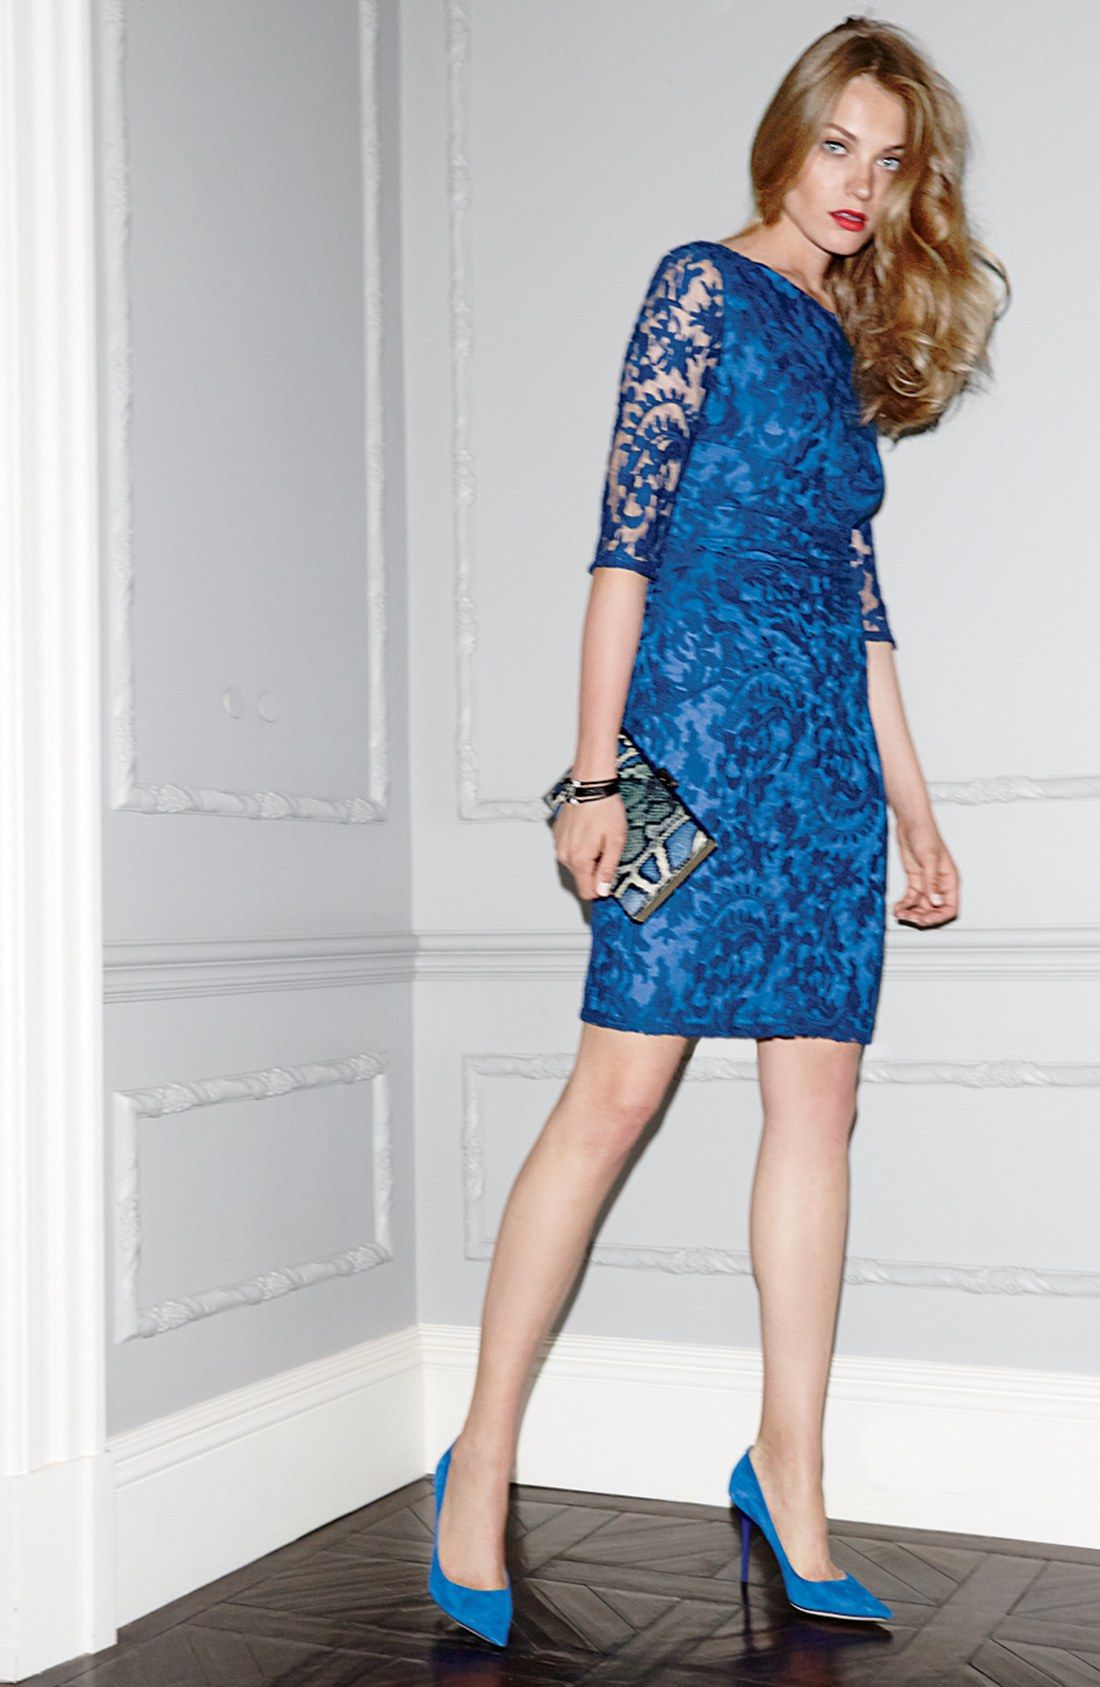 Smitten with this blue lace sheath dress cute clothes carolus